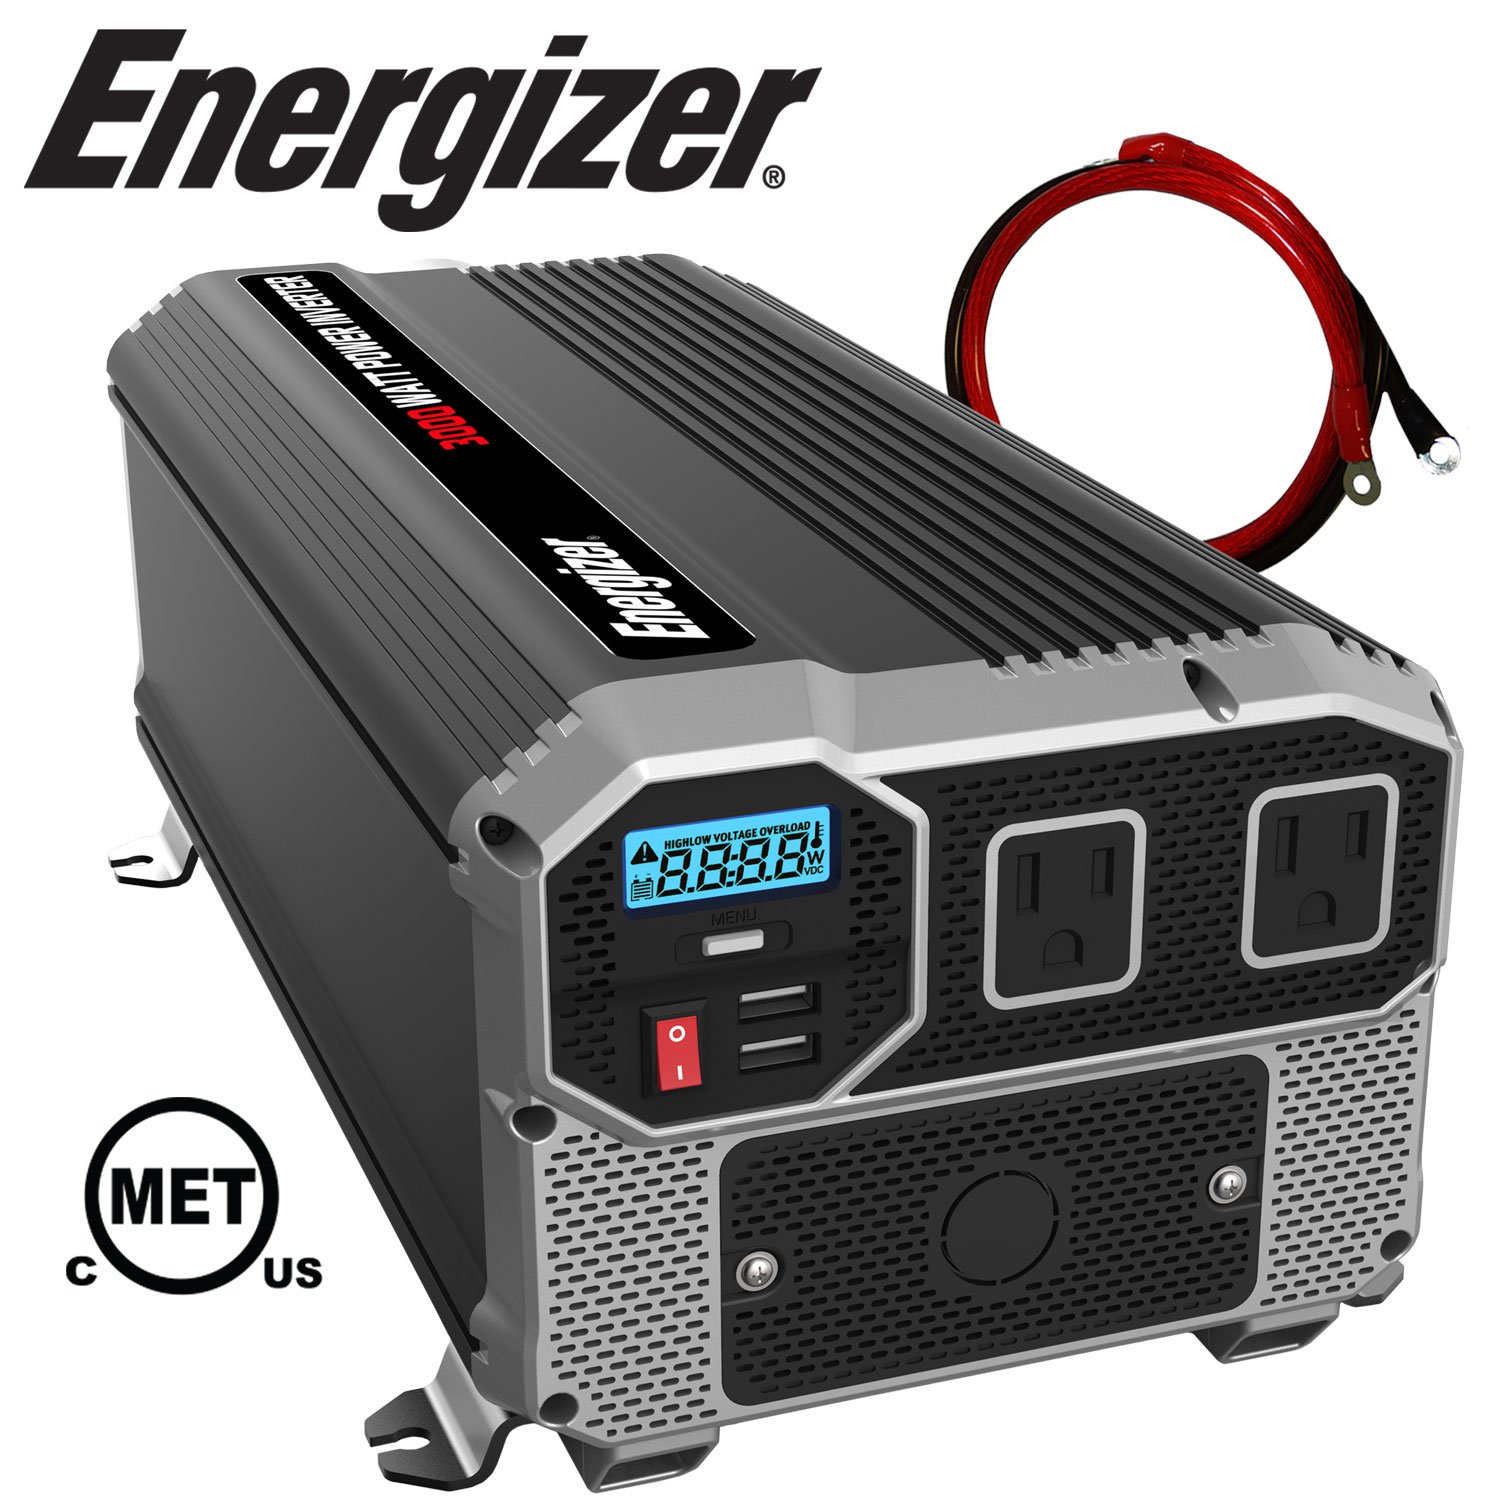 Energizer 3000 Watt 12V Power Inverter, Dual 110V AC Outlets, Automotive Back Up Power Supply Car Inverter, Converts 120 Volt AC with 2 USB Ports 2.4A Each by Energizer